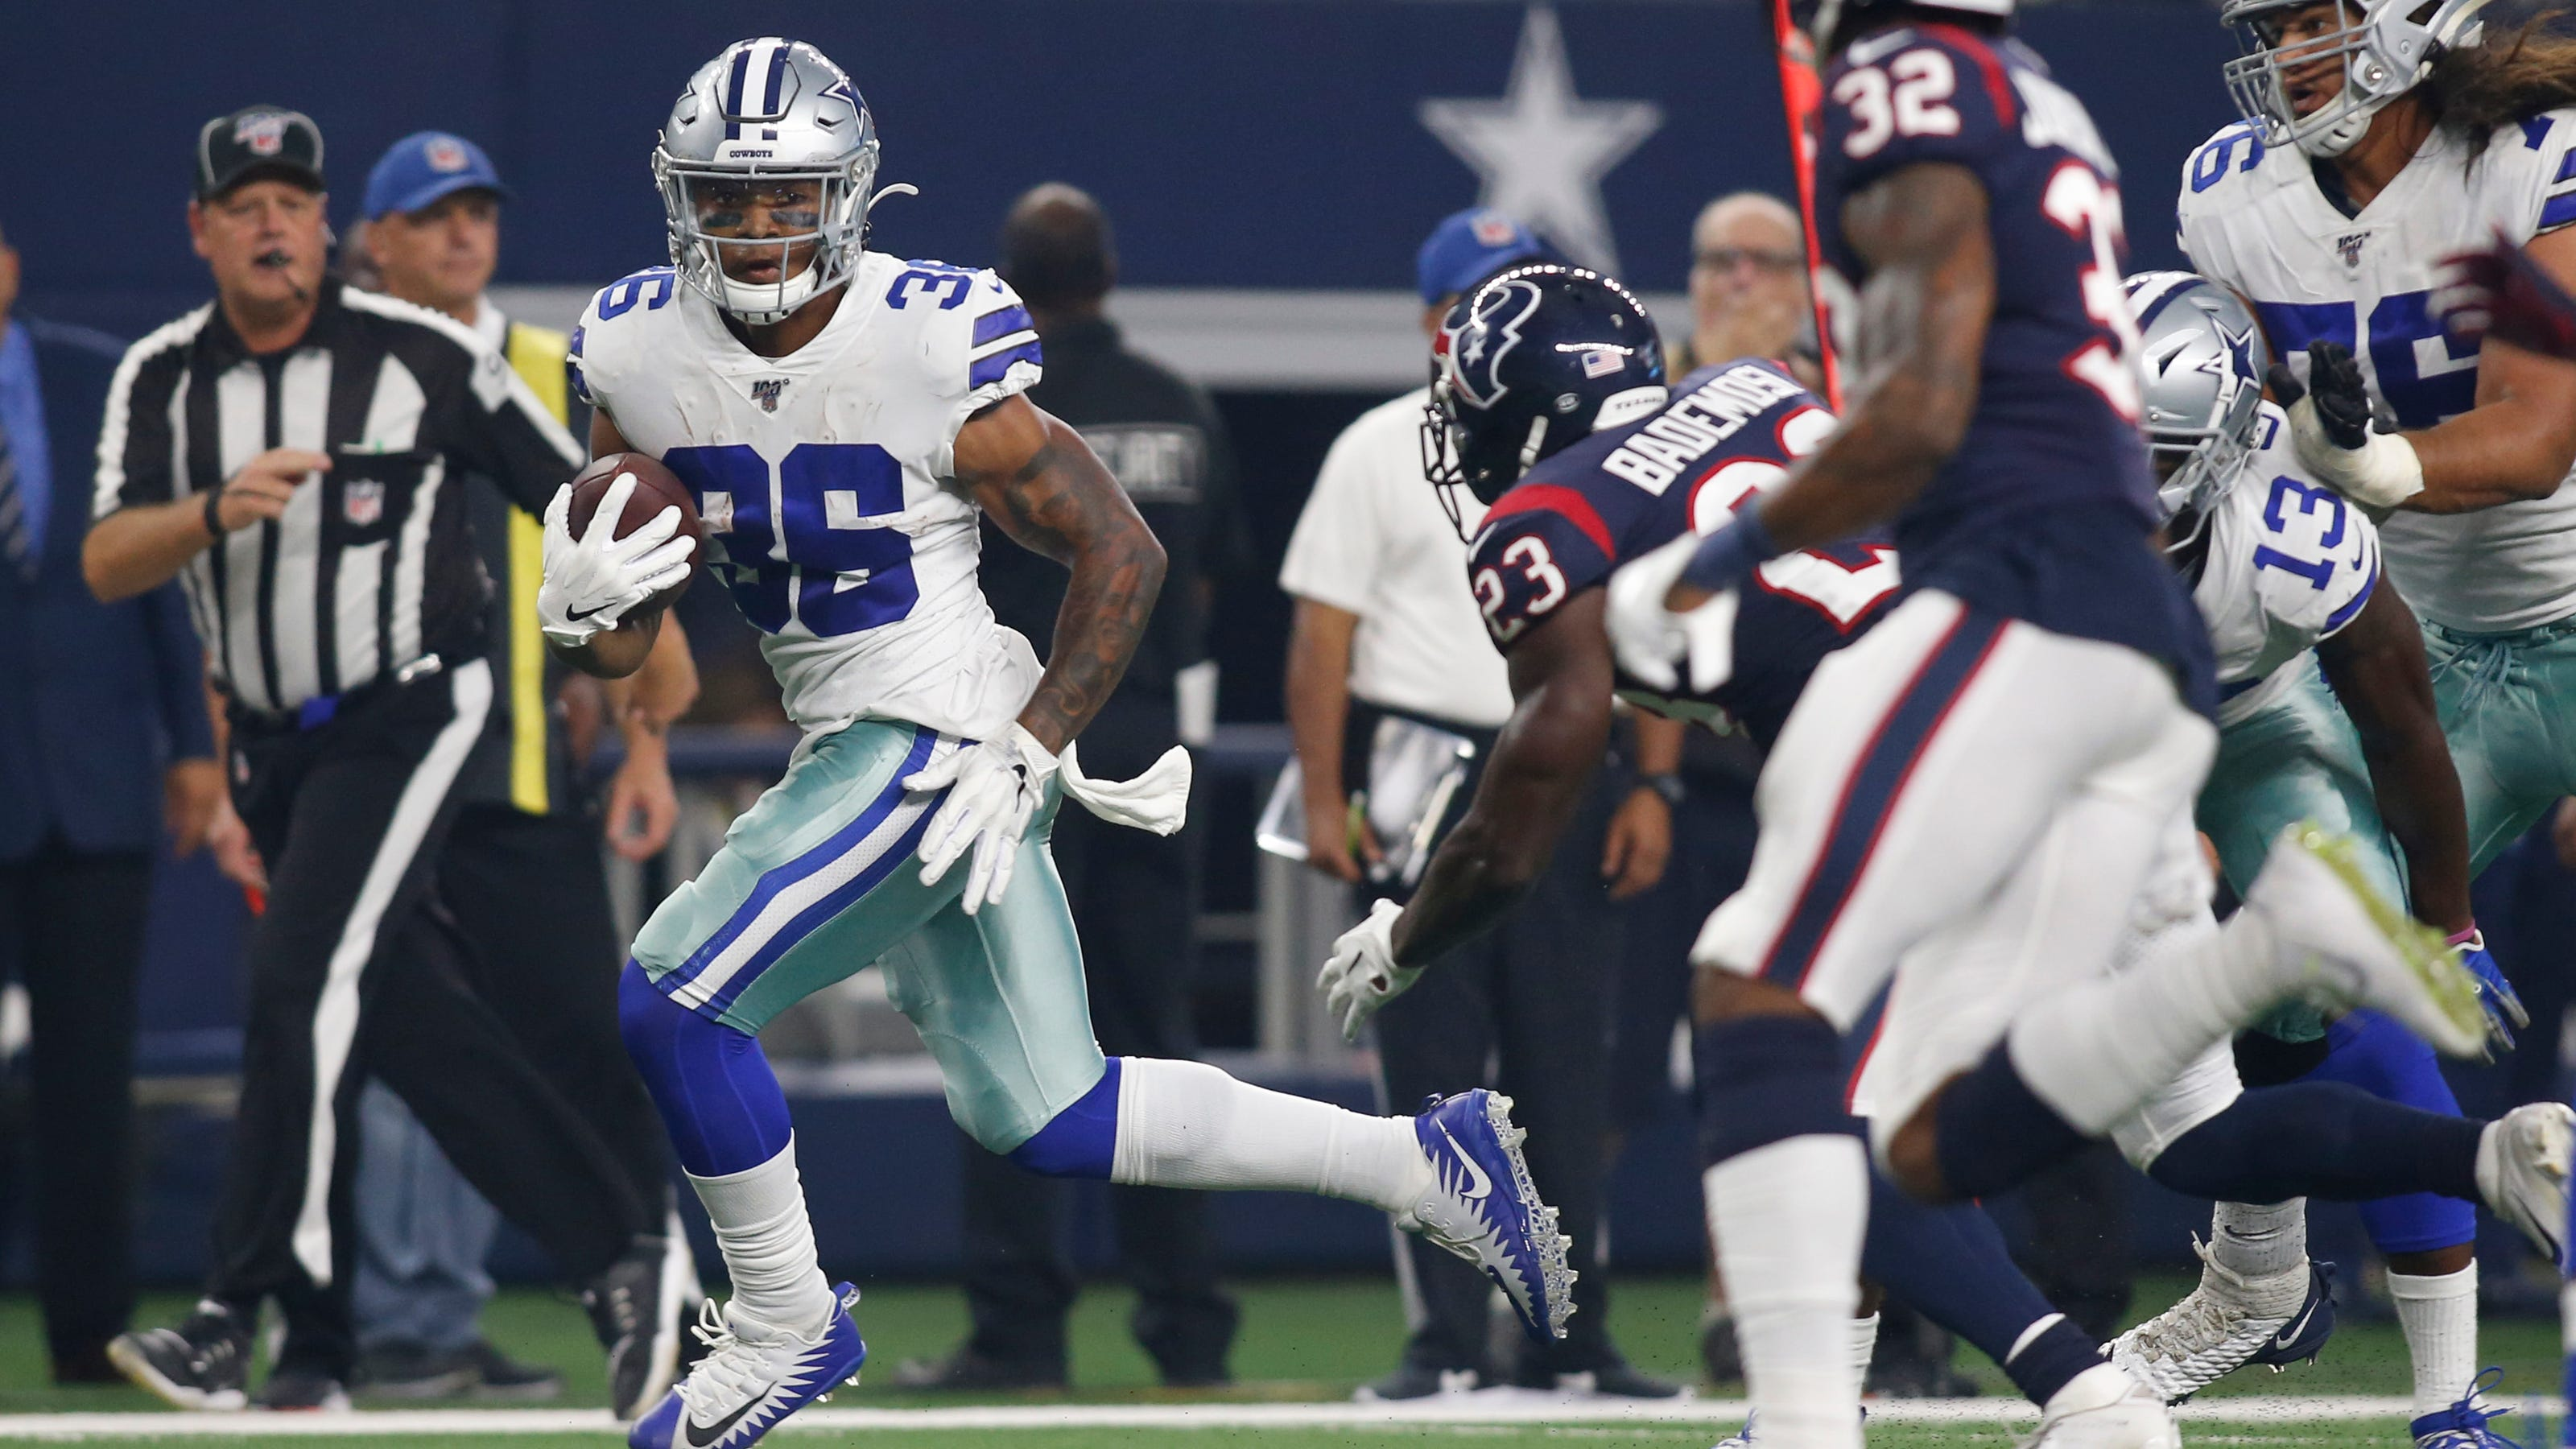 Houston Texans at Dallas Cowboys preseason game: Live stream, time, date, how to watch